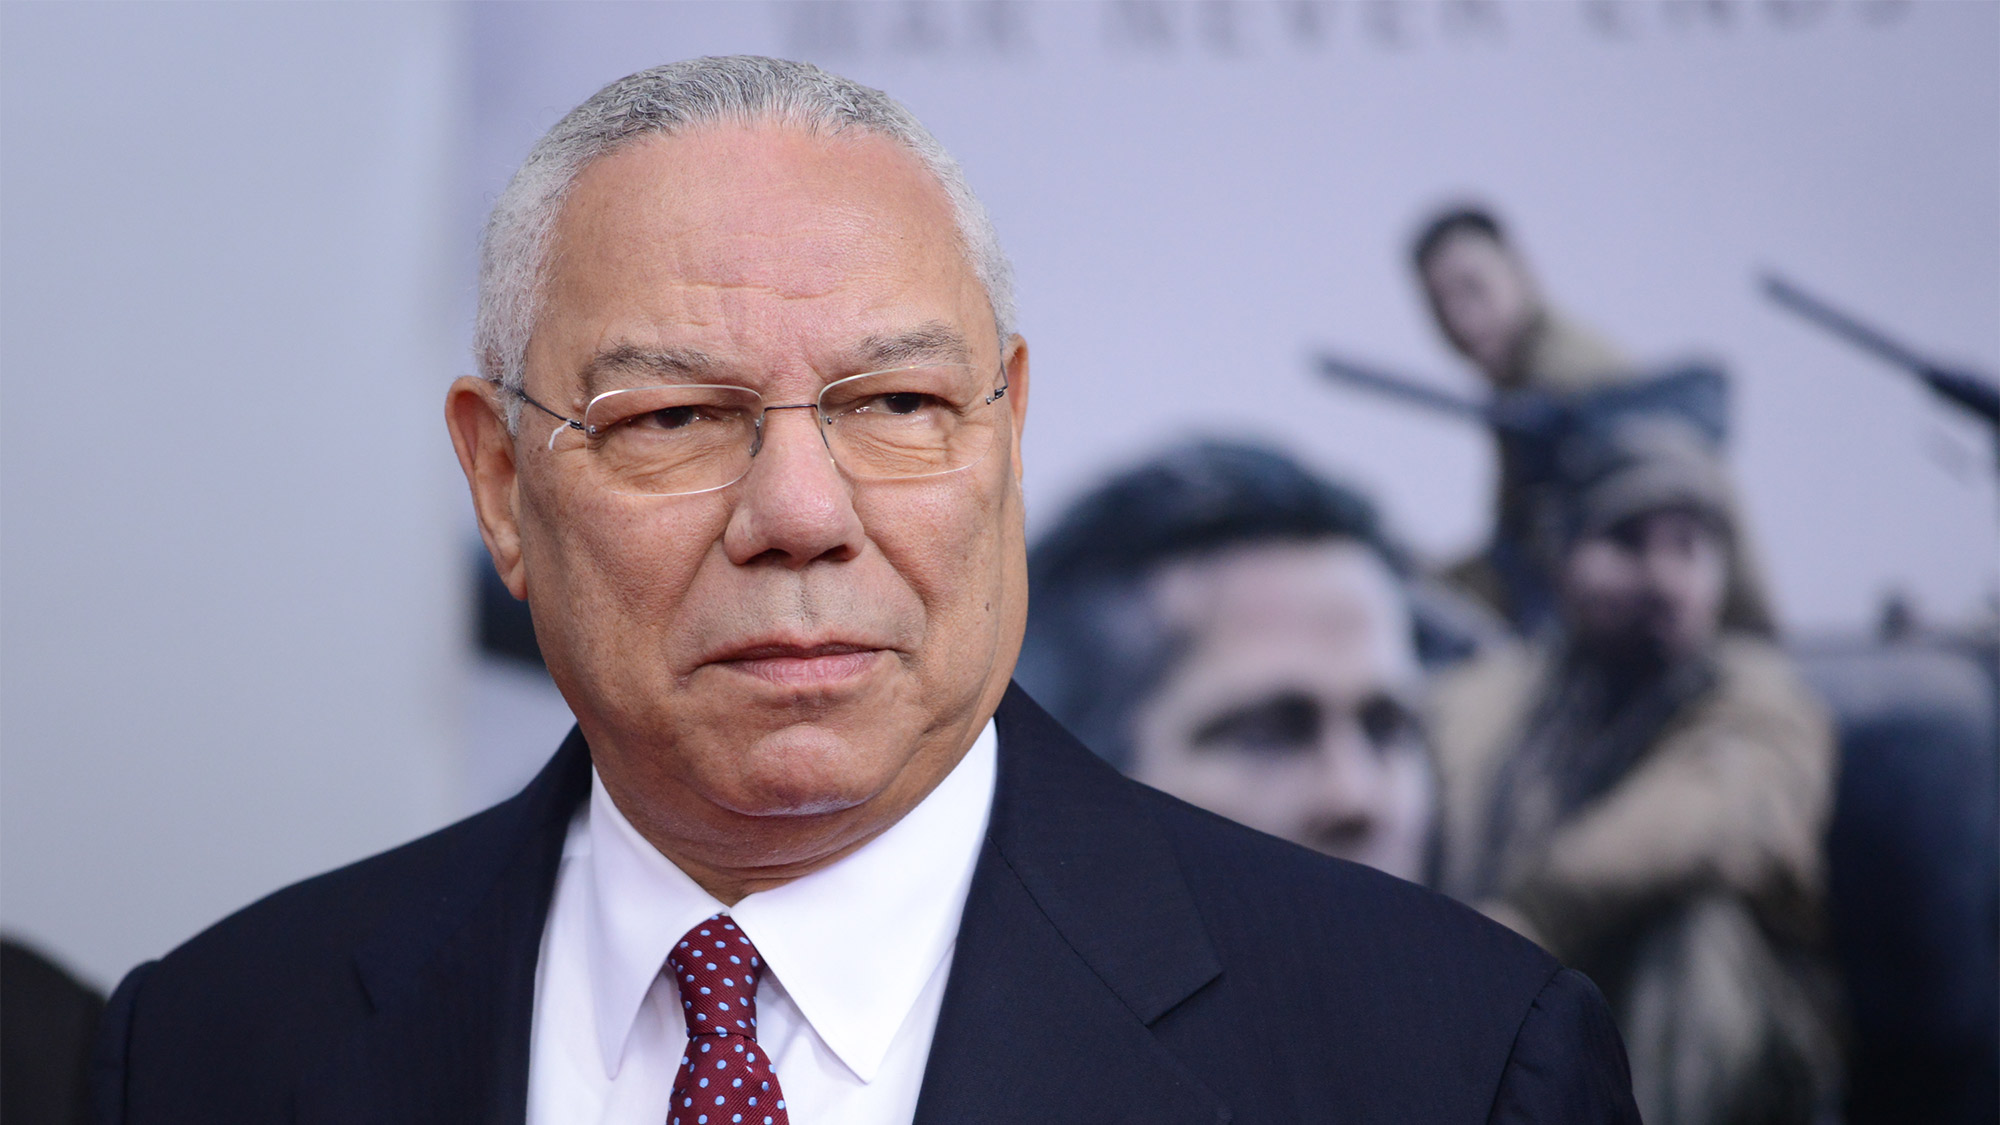 Colin Powell says Trump's foreign policy 'is in shambles,' Republican Party needs to 'get a grip'